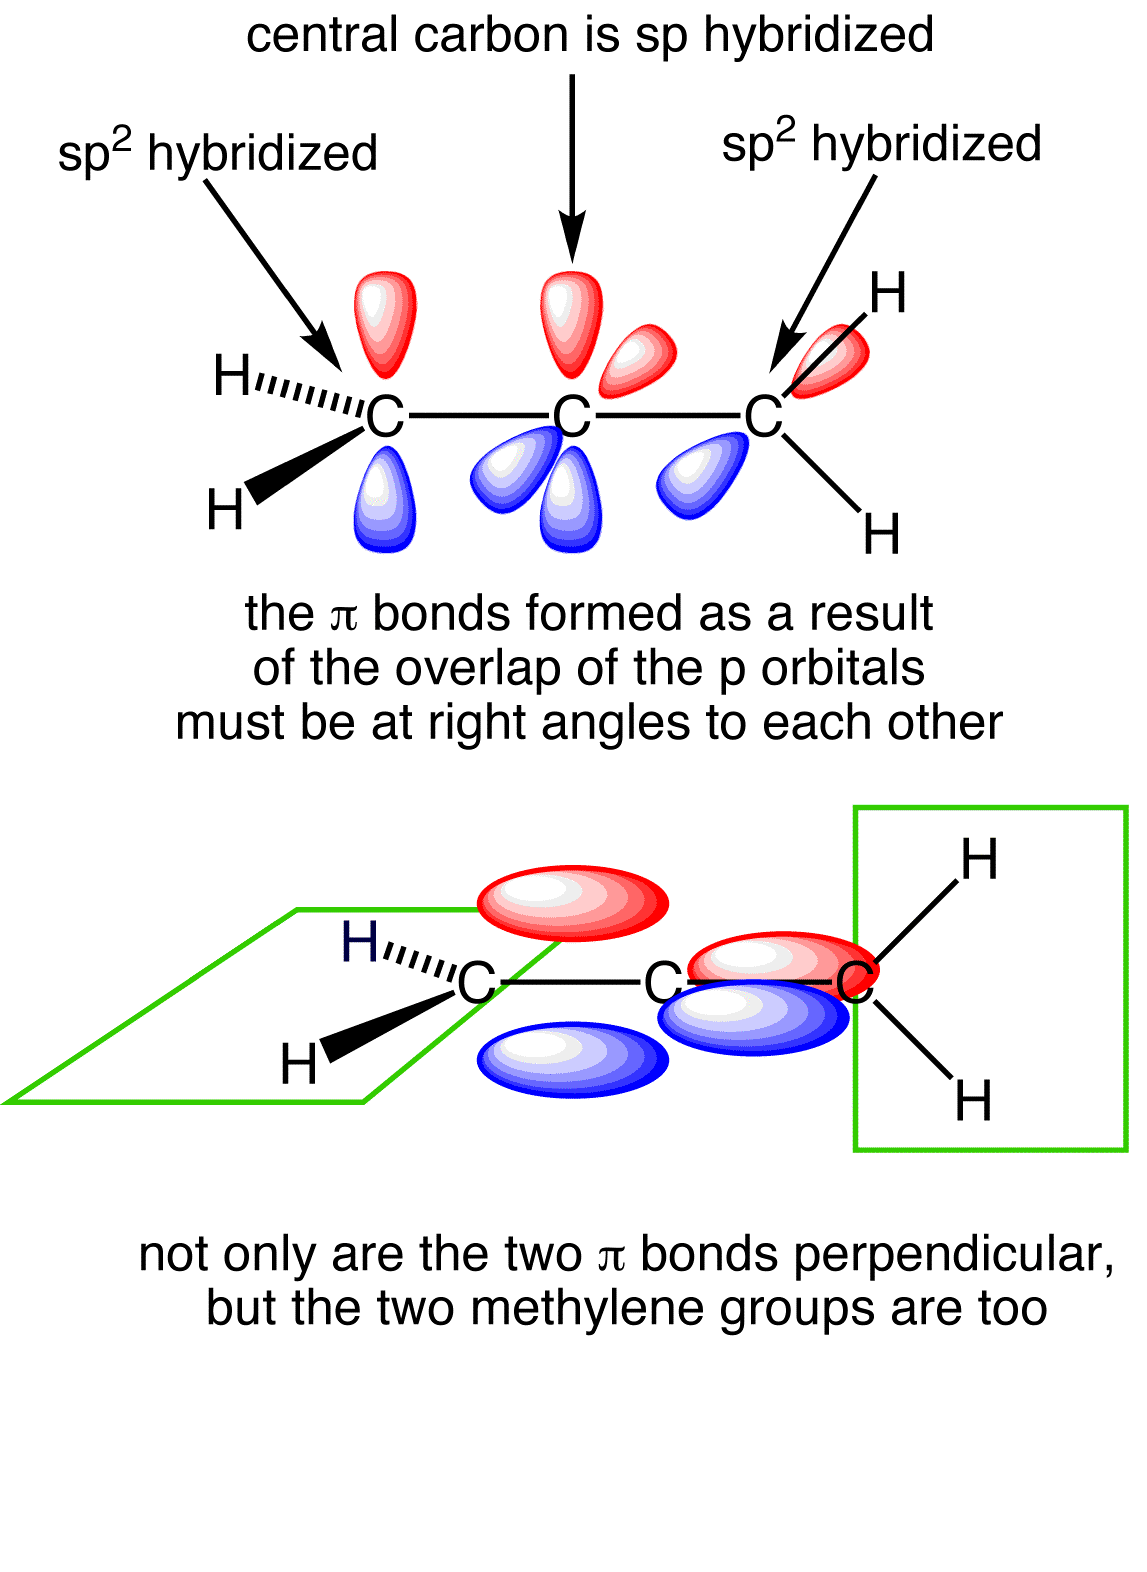 click the images to display the orthogonal p orbitals that make up the two  pi-bonds and the resulting pi-orbitals  use the buttons to display the  orthogonal